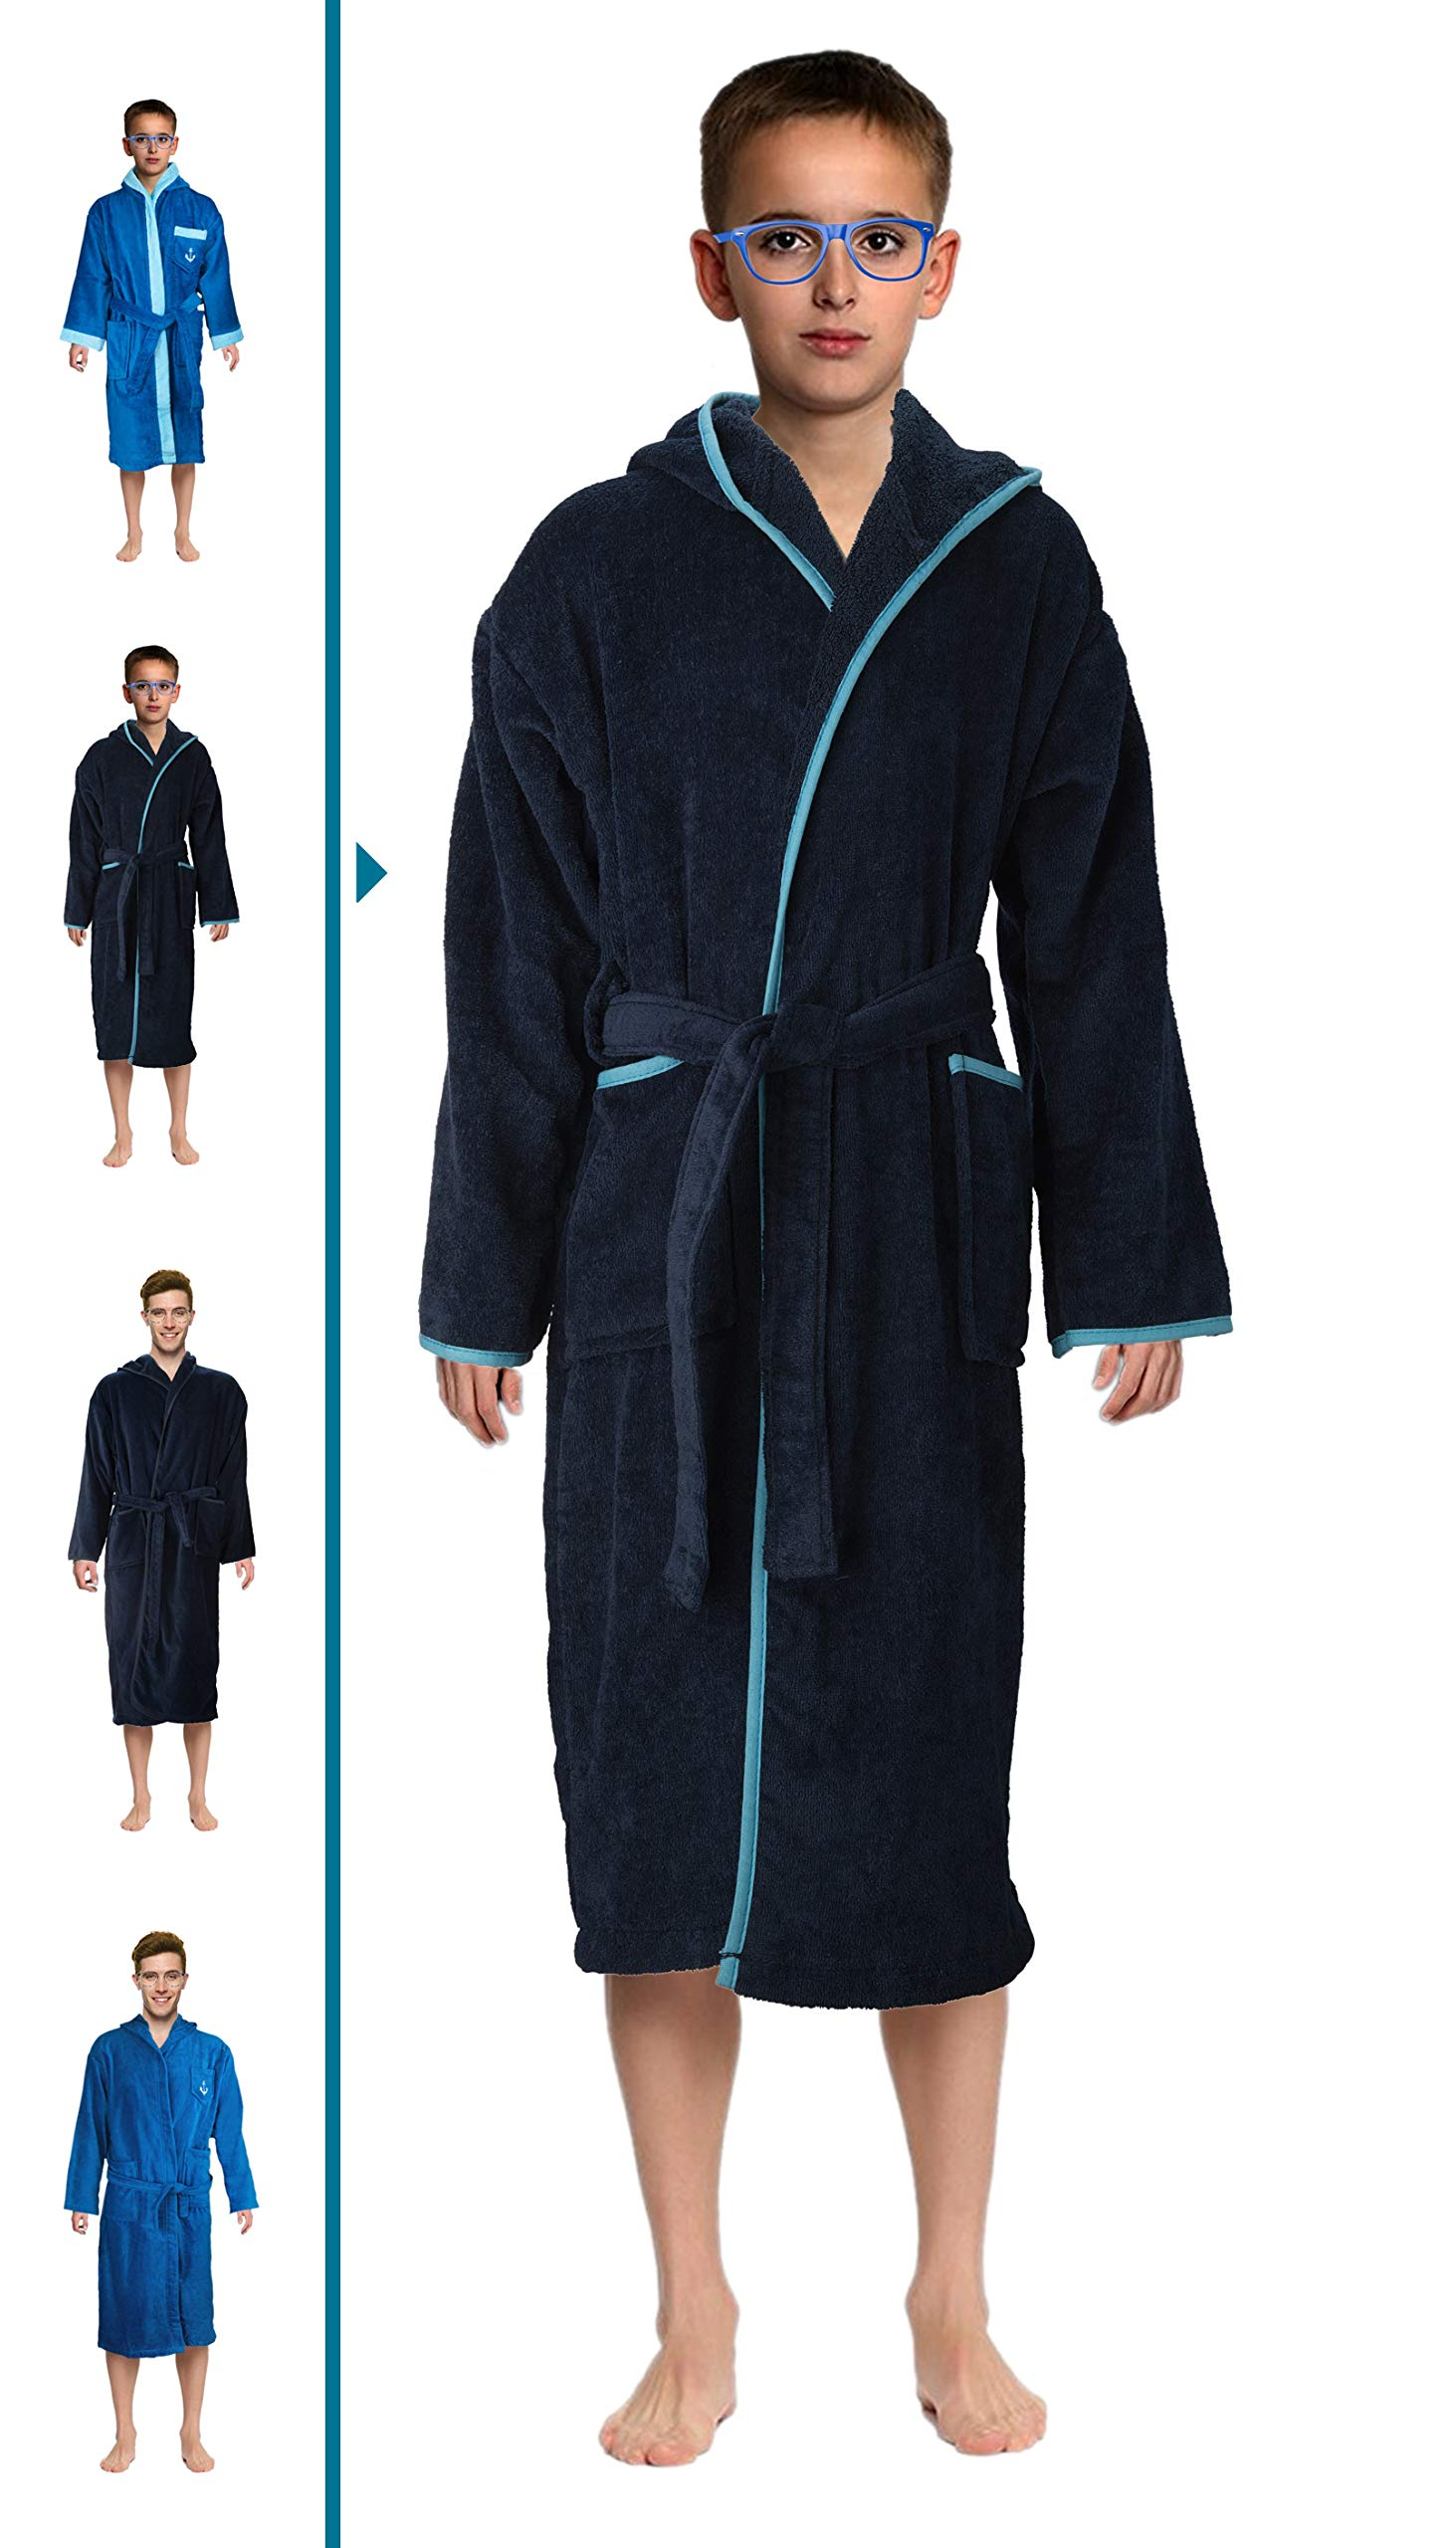 Bath Robe Men's/Boys 100% Cotton Bathrobe Long Hooded Bathrobe 100% Absorbent Cotton Terrycloth Inside And Velour Finishing Outside With 2 Pockets by Abstract